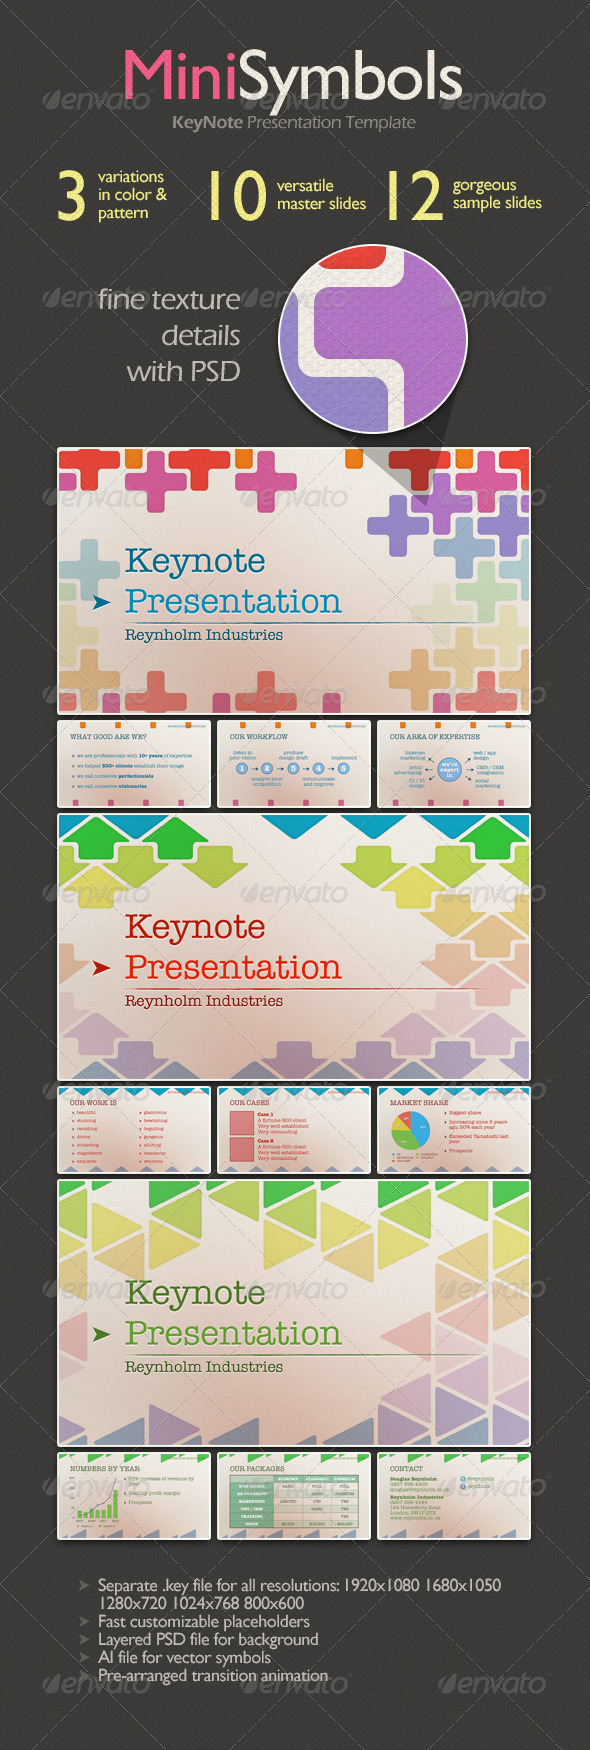 GraphicRiver MiniSymbols Keynote Presentation Template 3638660